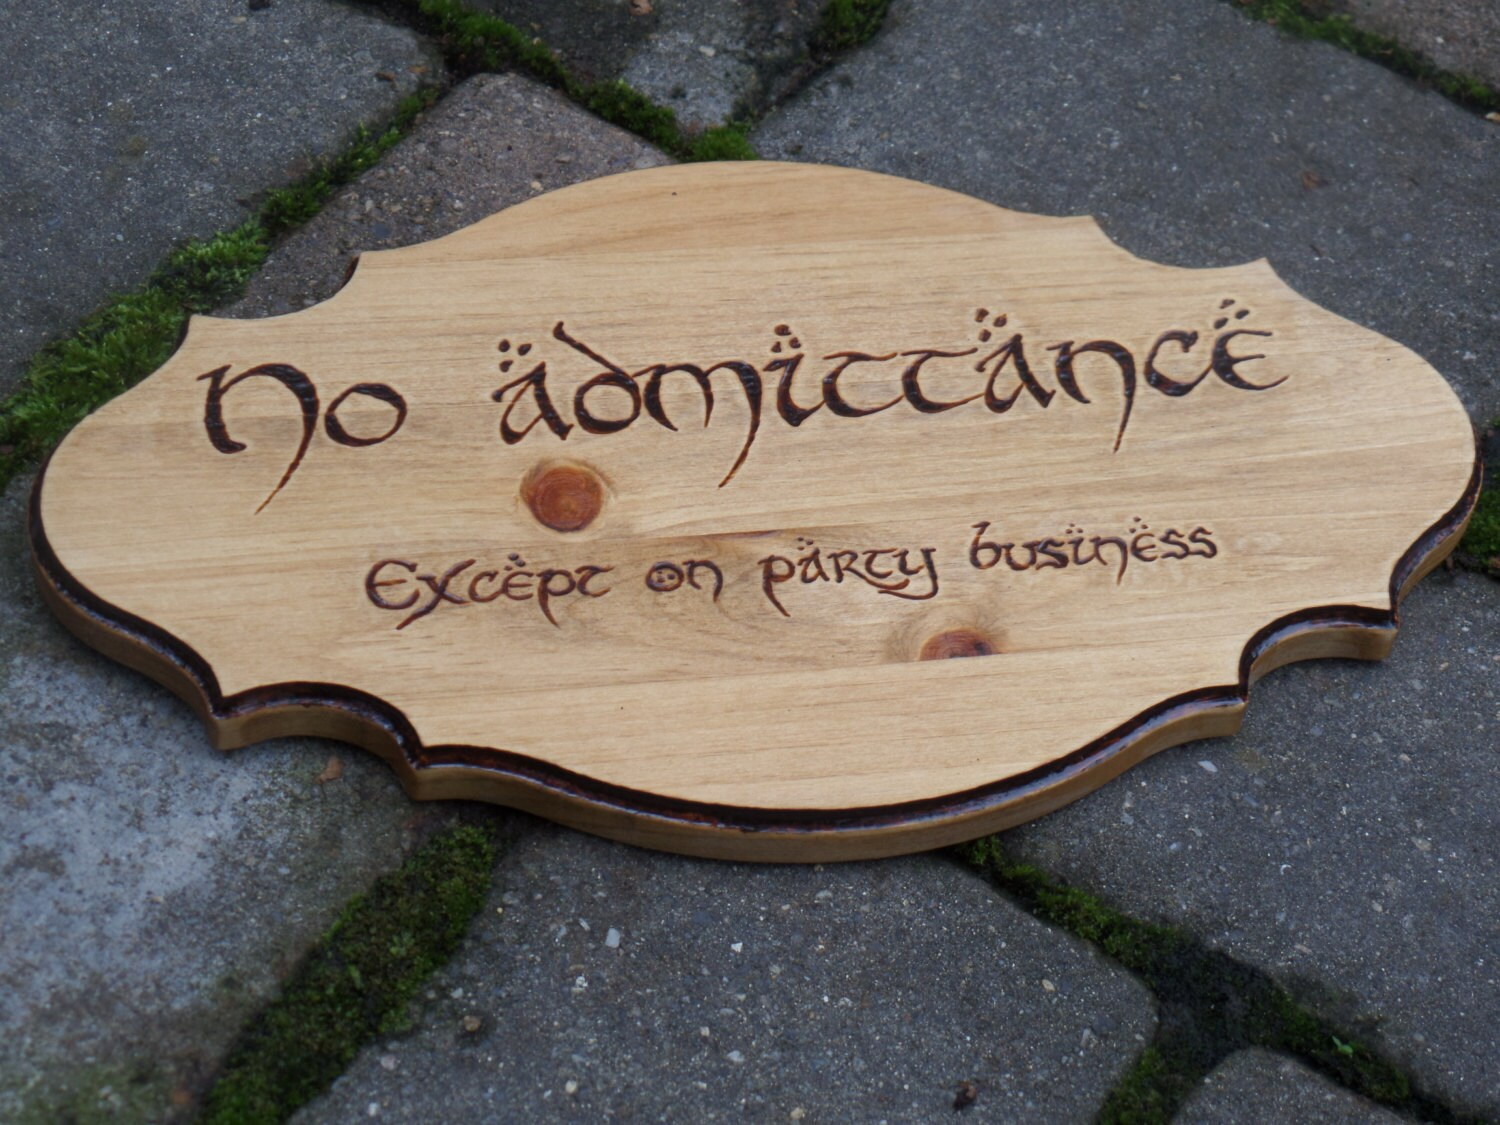 No Admittance Except On Party Business Lord Of The Rings Etsy Card Holder Circuit Board Geekery Mens Stained Glass Handmade 50